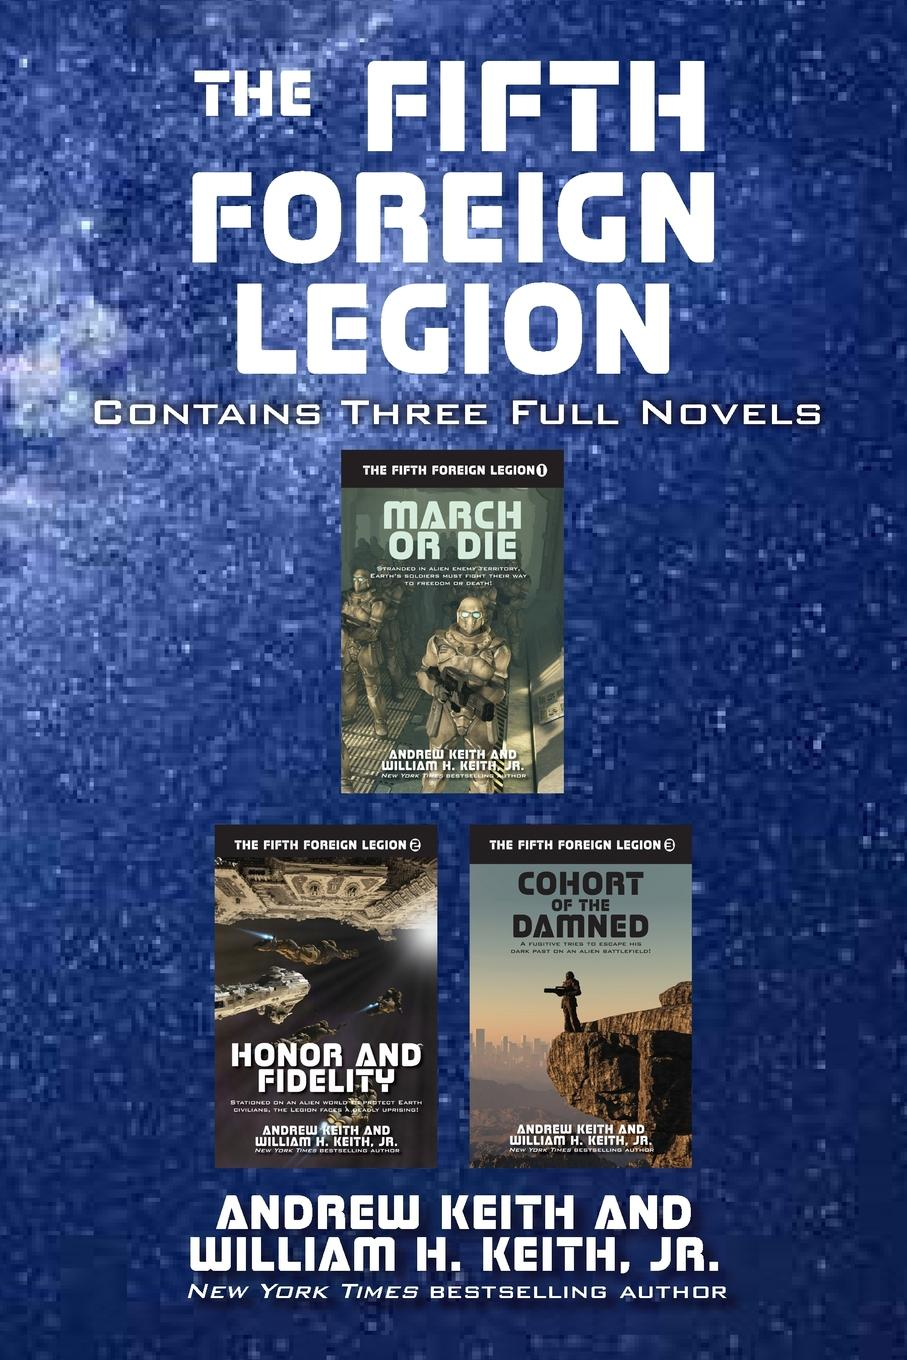 Andrew Keith, William H. Keith Jr. The Fifth Foreign Legion. Contains Three Full Novels the complete short novels